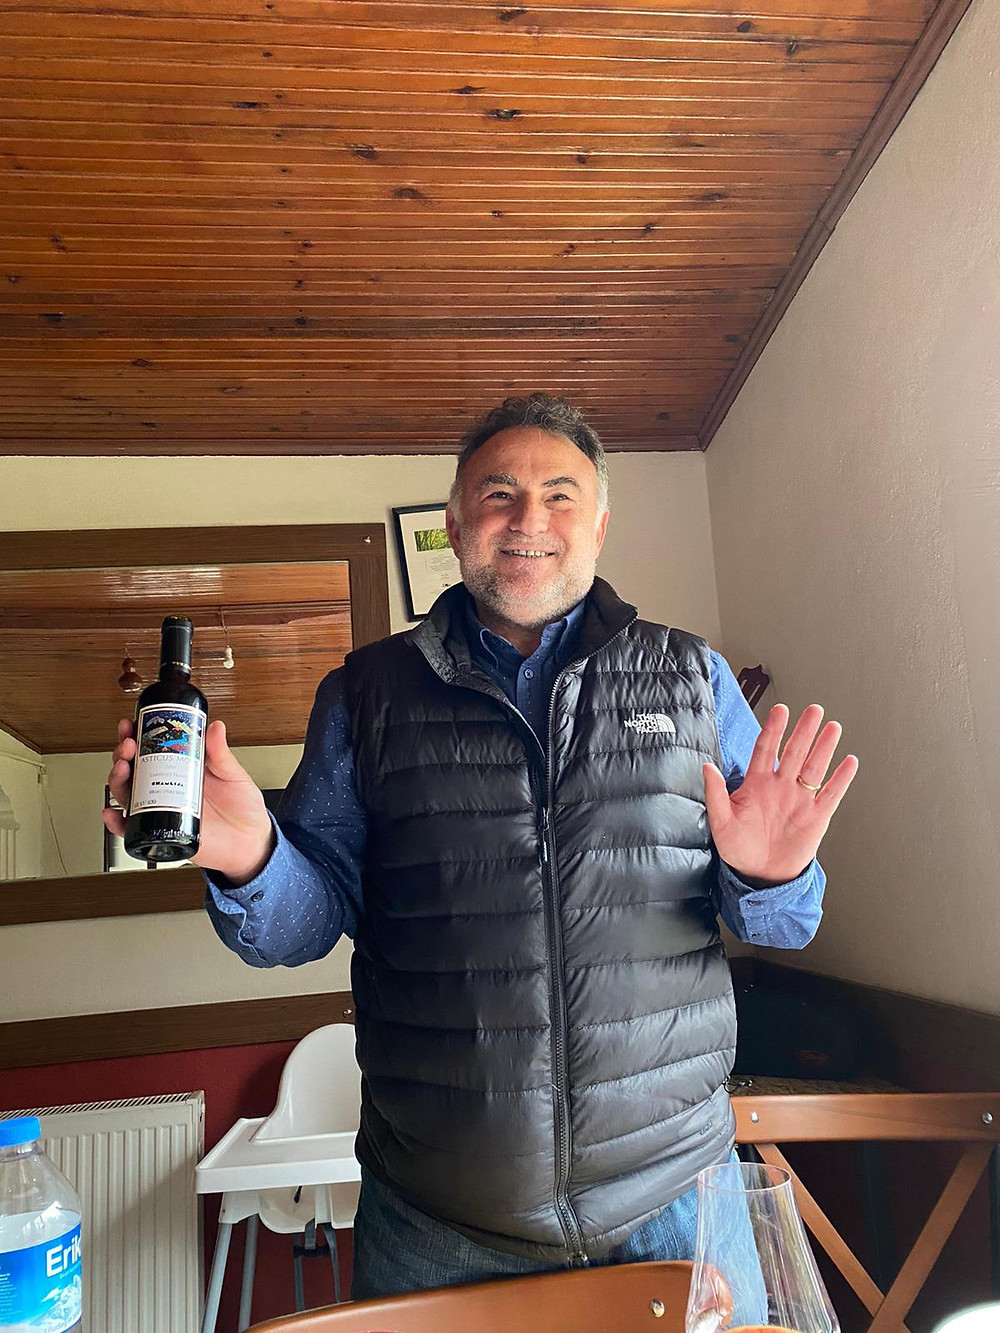 Mustafa Camlica holding Asticus Mons Cabernet Franc during a wine tasting at Chamlija winery on a winery visit